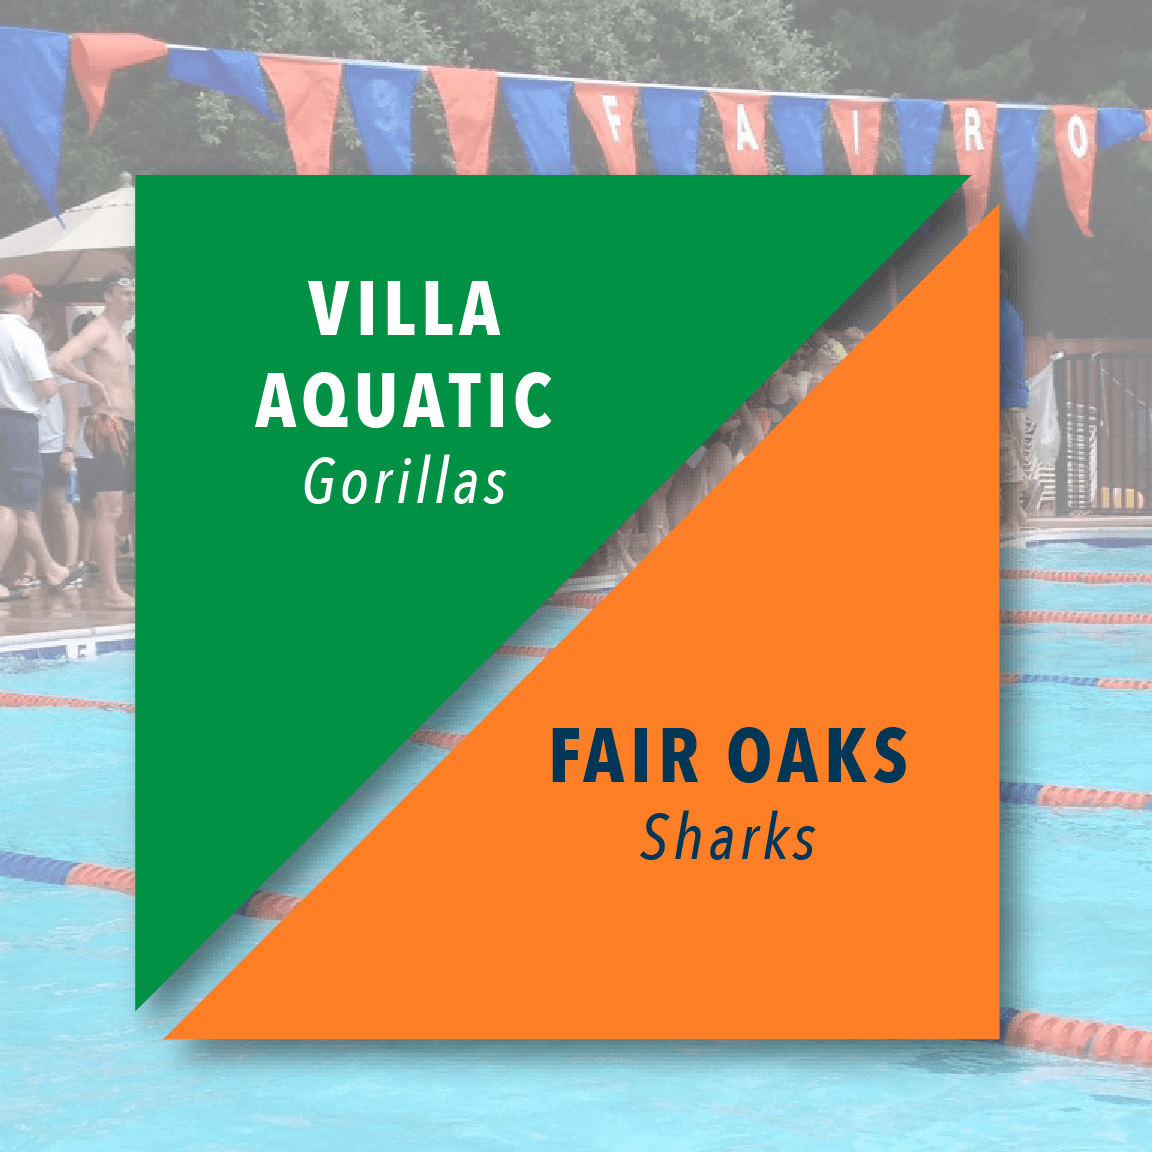 Wk 2 Meet of the Week: Villa Aquatic @ Fair Oaks